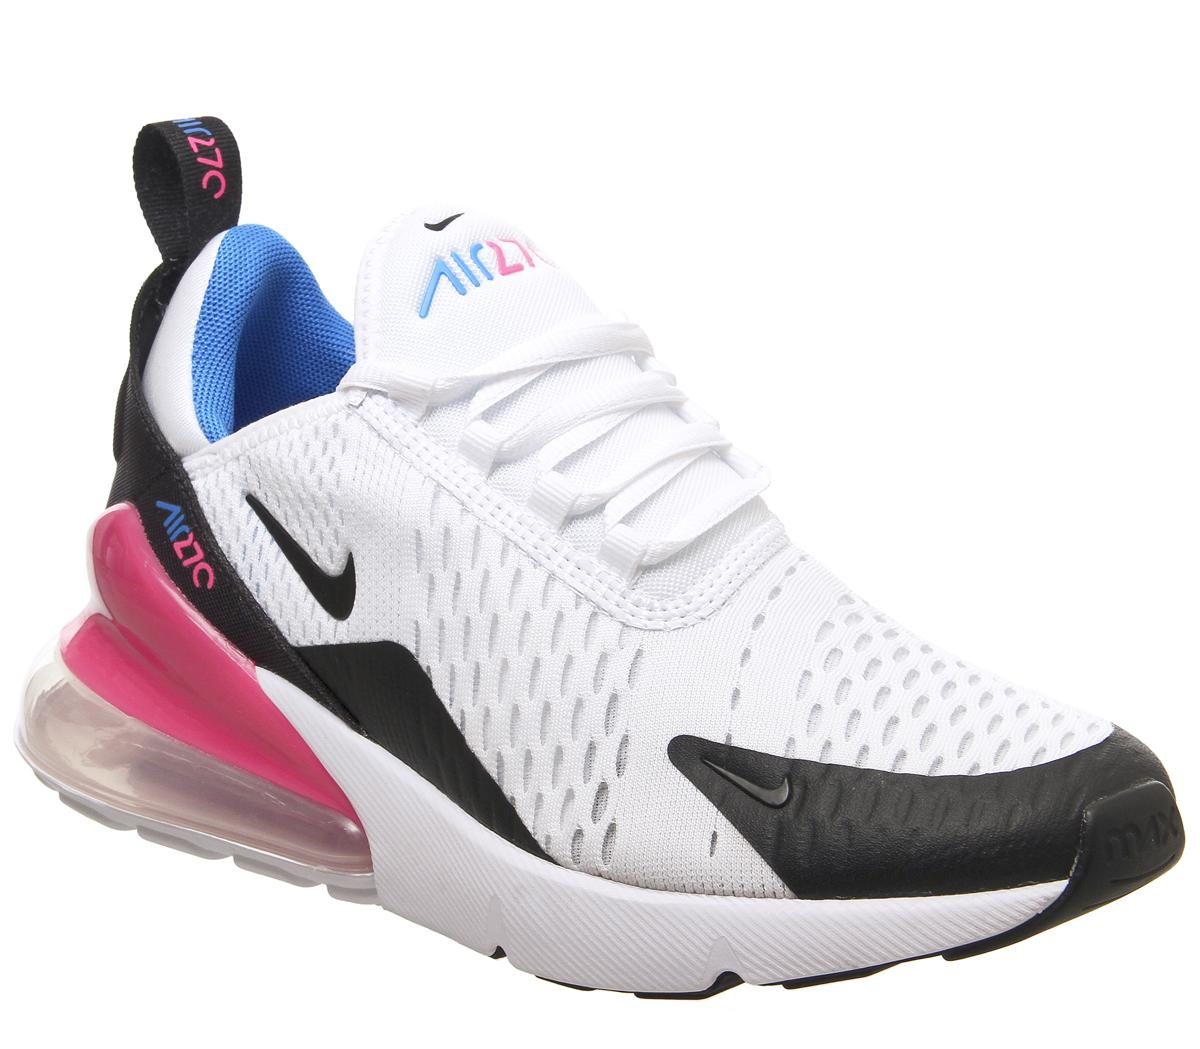 estremamente unico vendita a buon mercato usa stile distintivo Nike Air Max 270 Gs Trainers White Black Hyper Pink Photo Blue ...